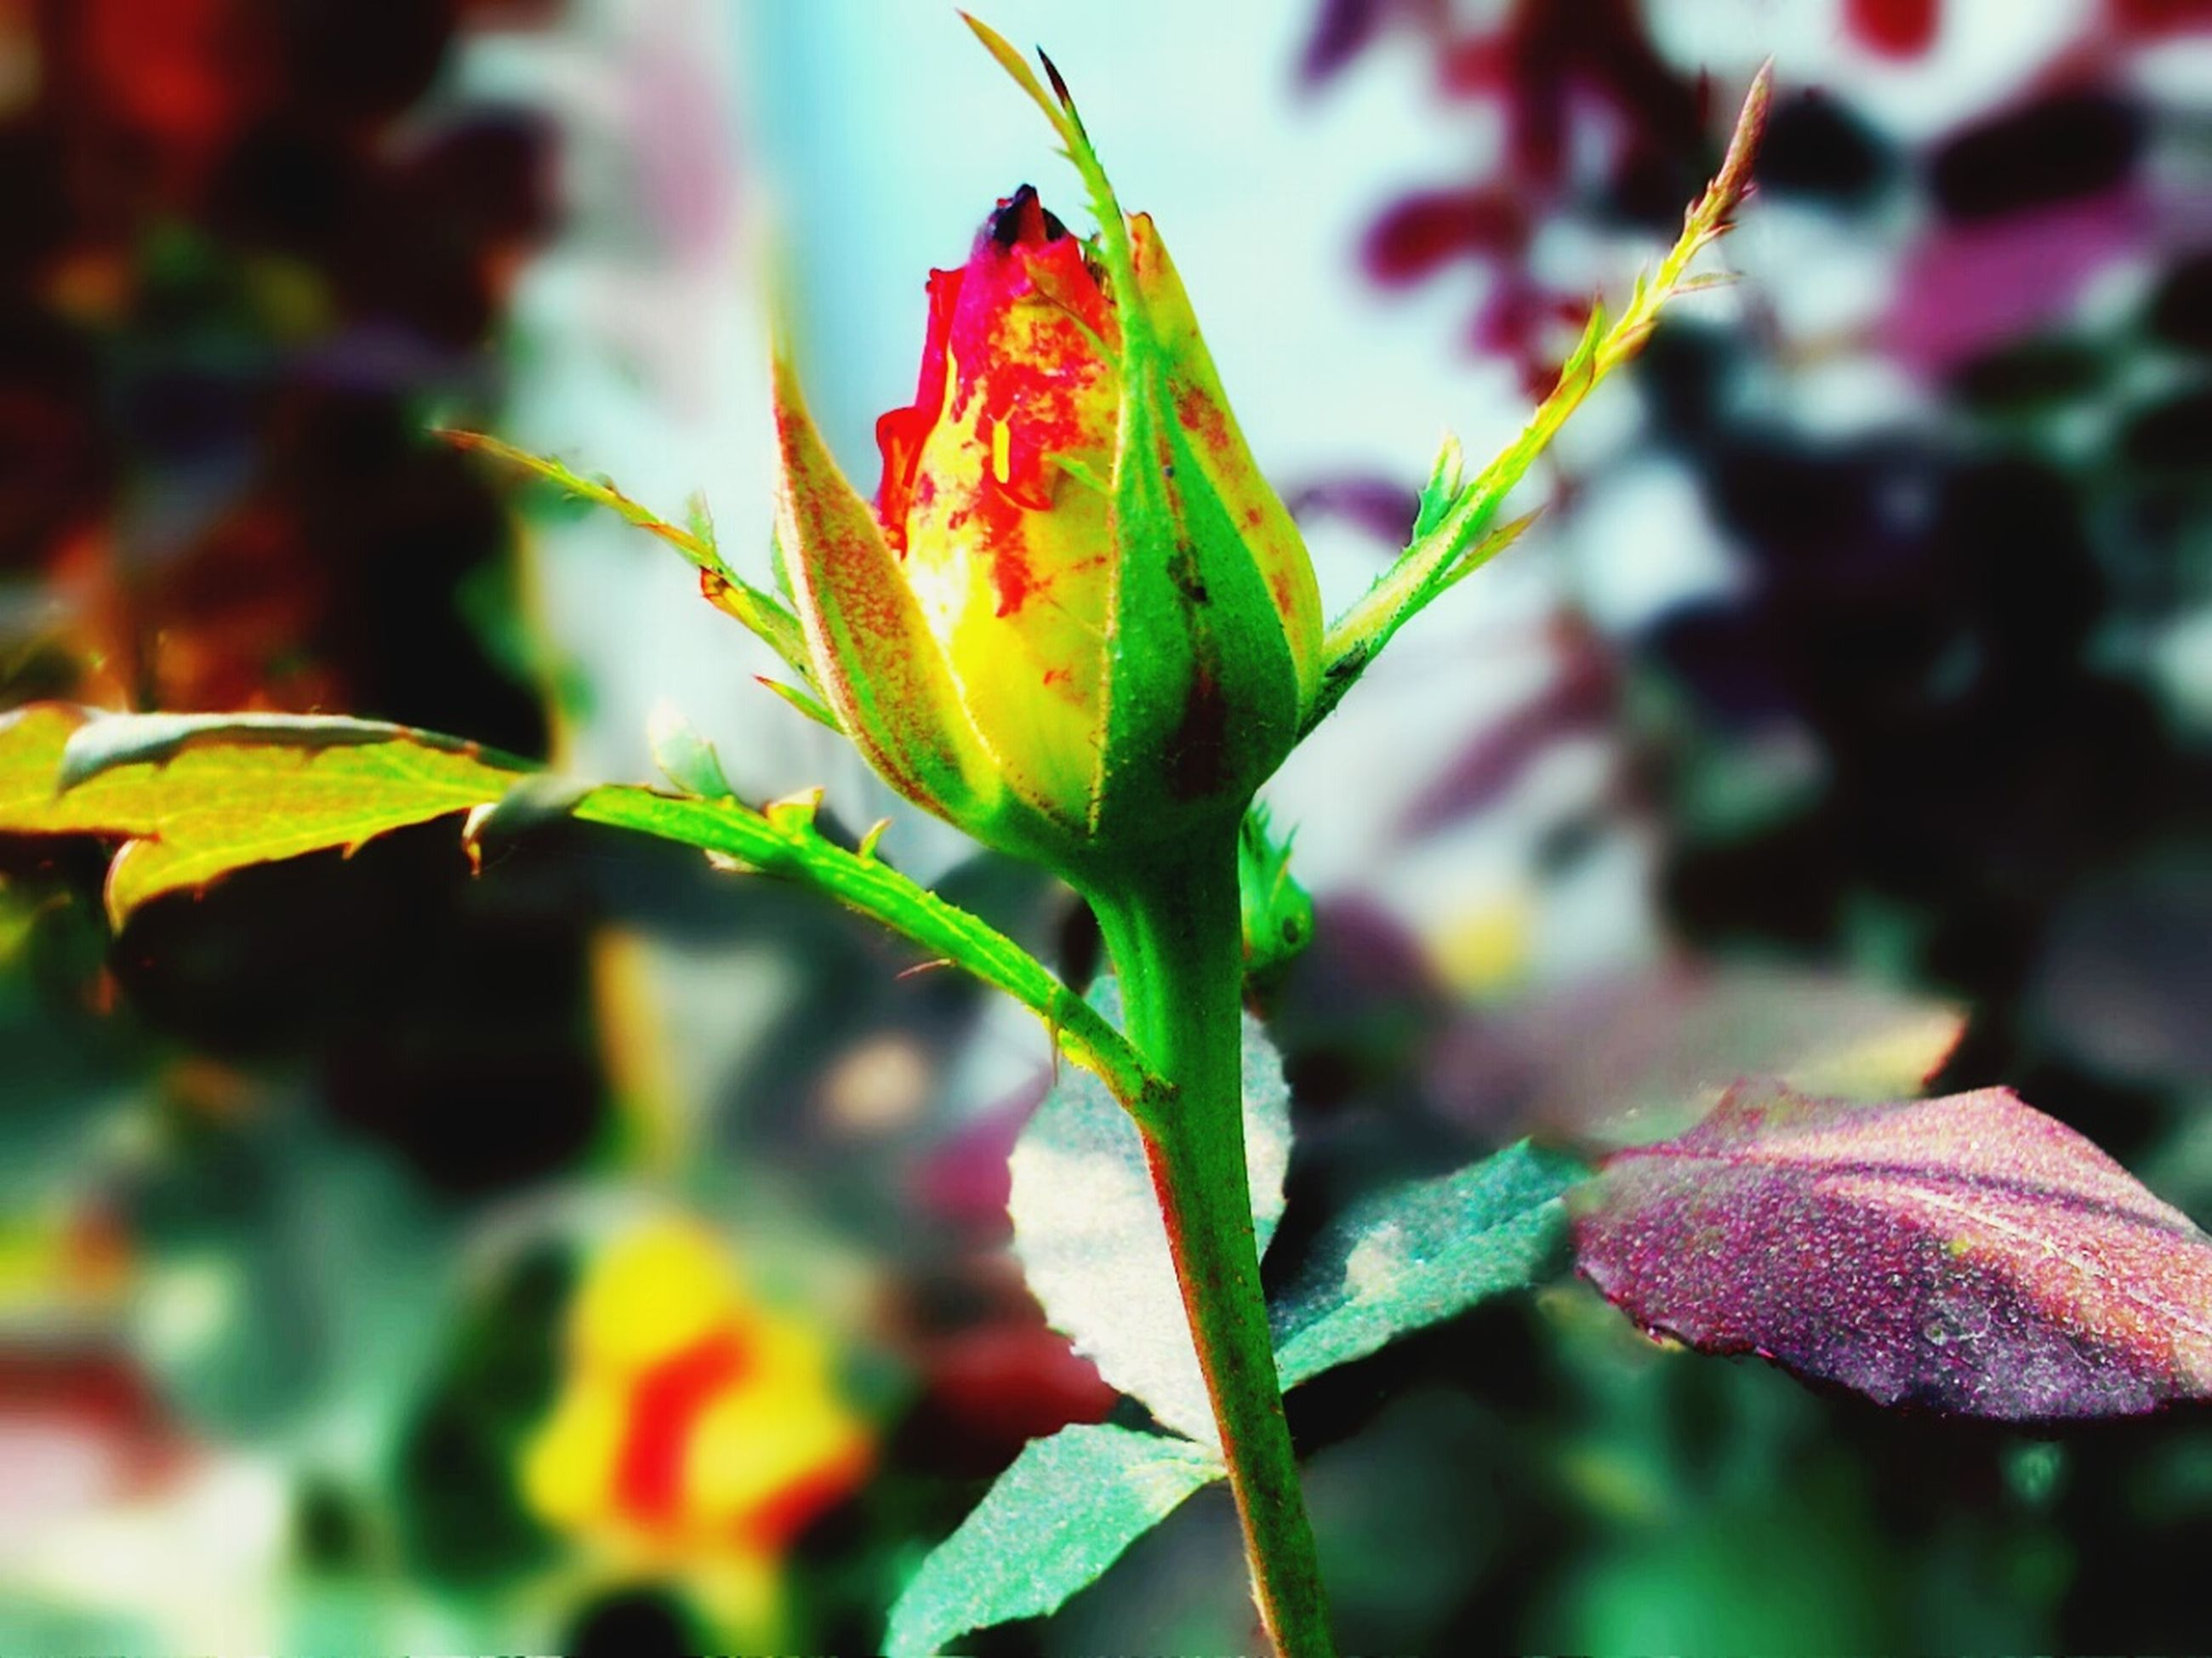 growth, leaf, close-up, freshness, focus on foreground, plant, flower, fragility, beauty in nature, nature, stem, bud, petal, flower head, selective focus, green color, red, outdoors, day, growing